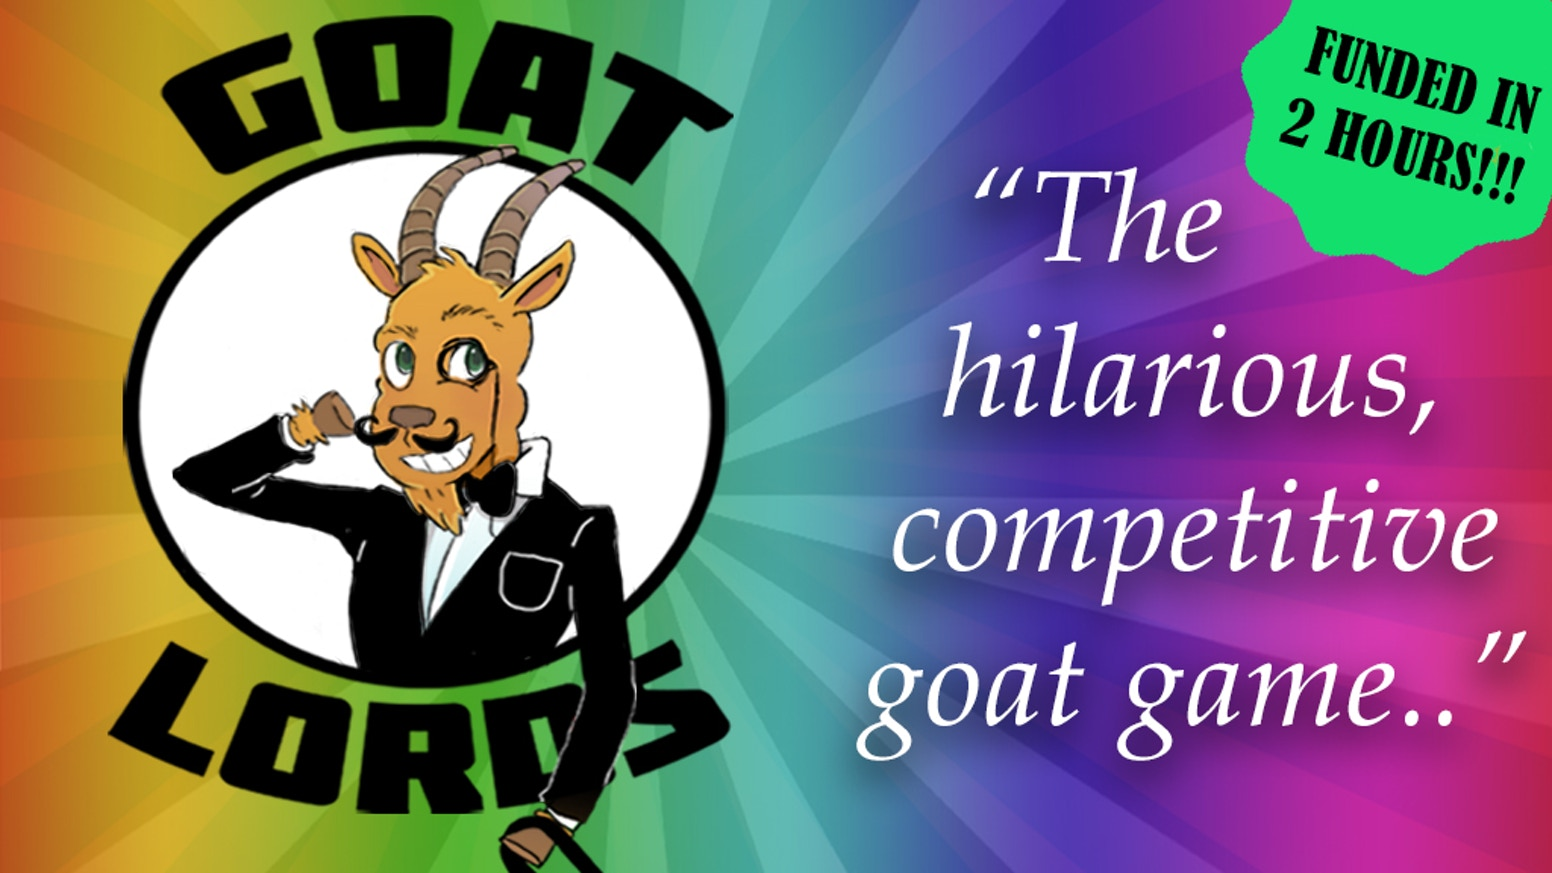 Want to be LORD OF THE GOATS? Start building your herd using thievery, magic, bombs and mostly goats.